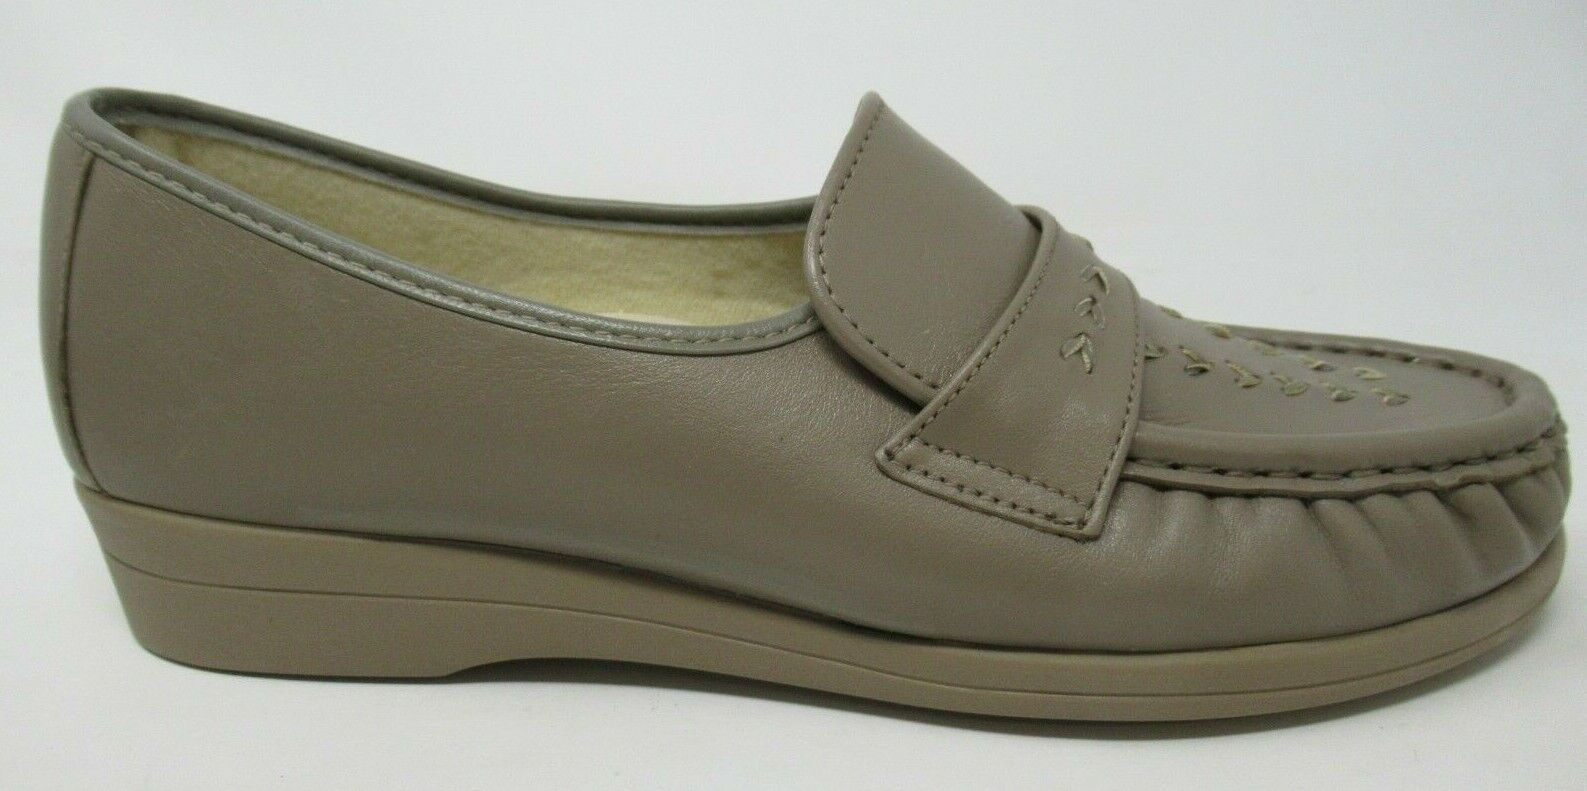 SOFTSPOTS WOMEN'S VENUS LITE TAUPE LEATHER SLIP-ON COMFORT LOAFERS SHOES 8/N